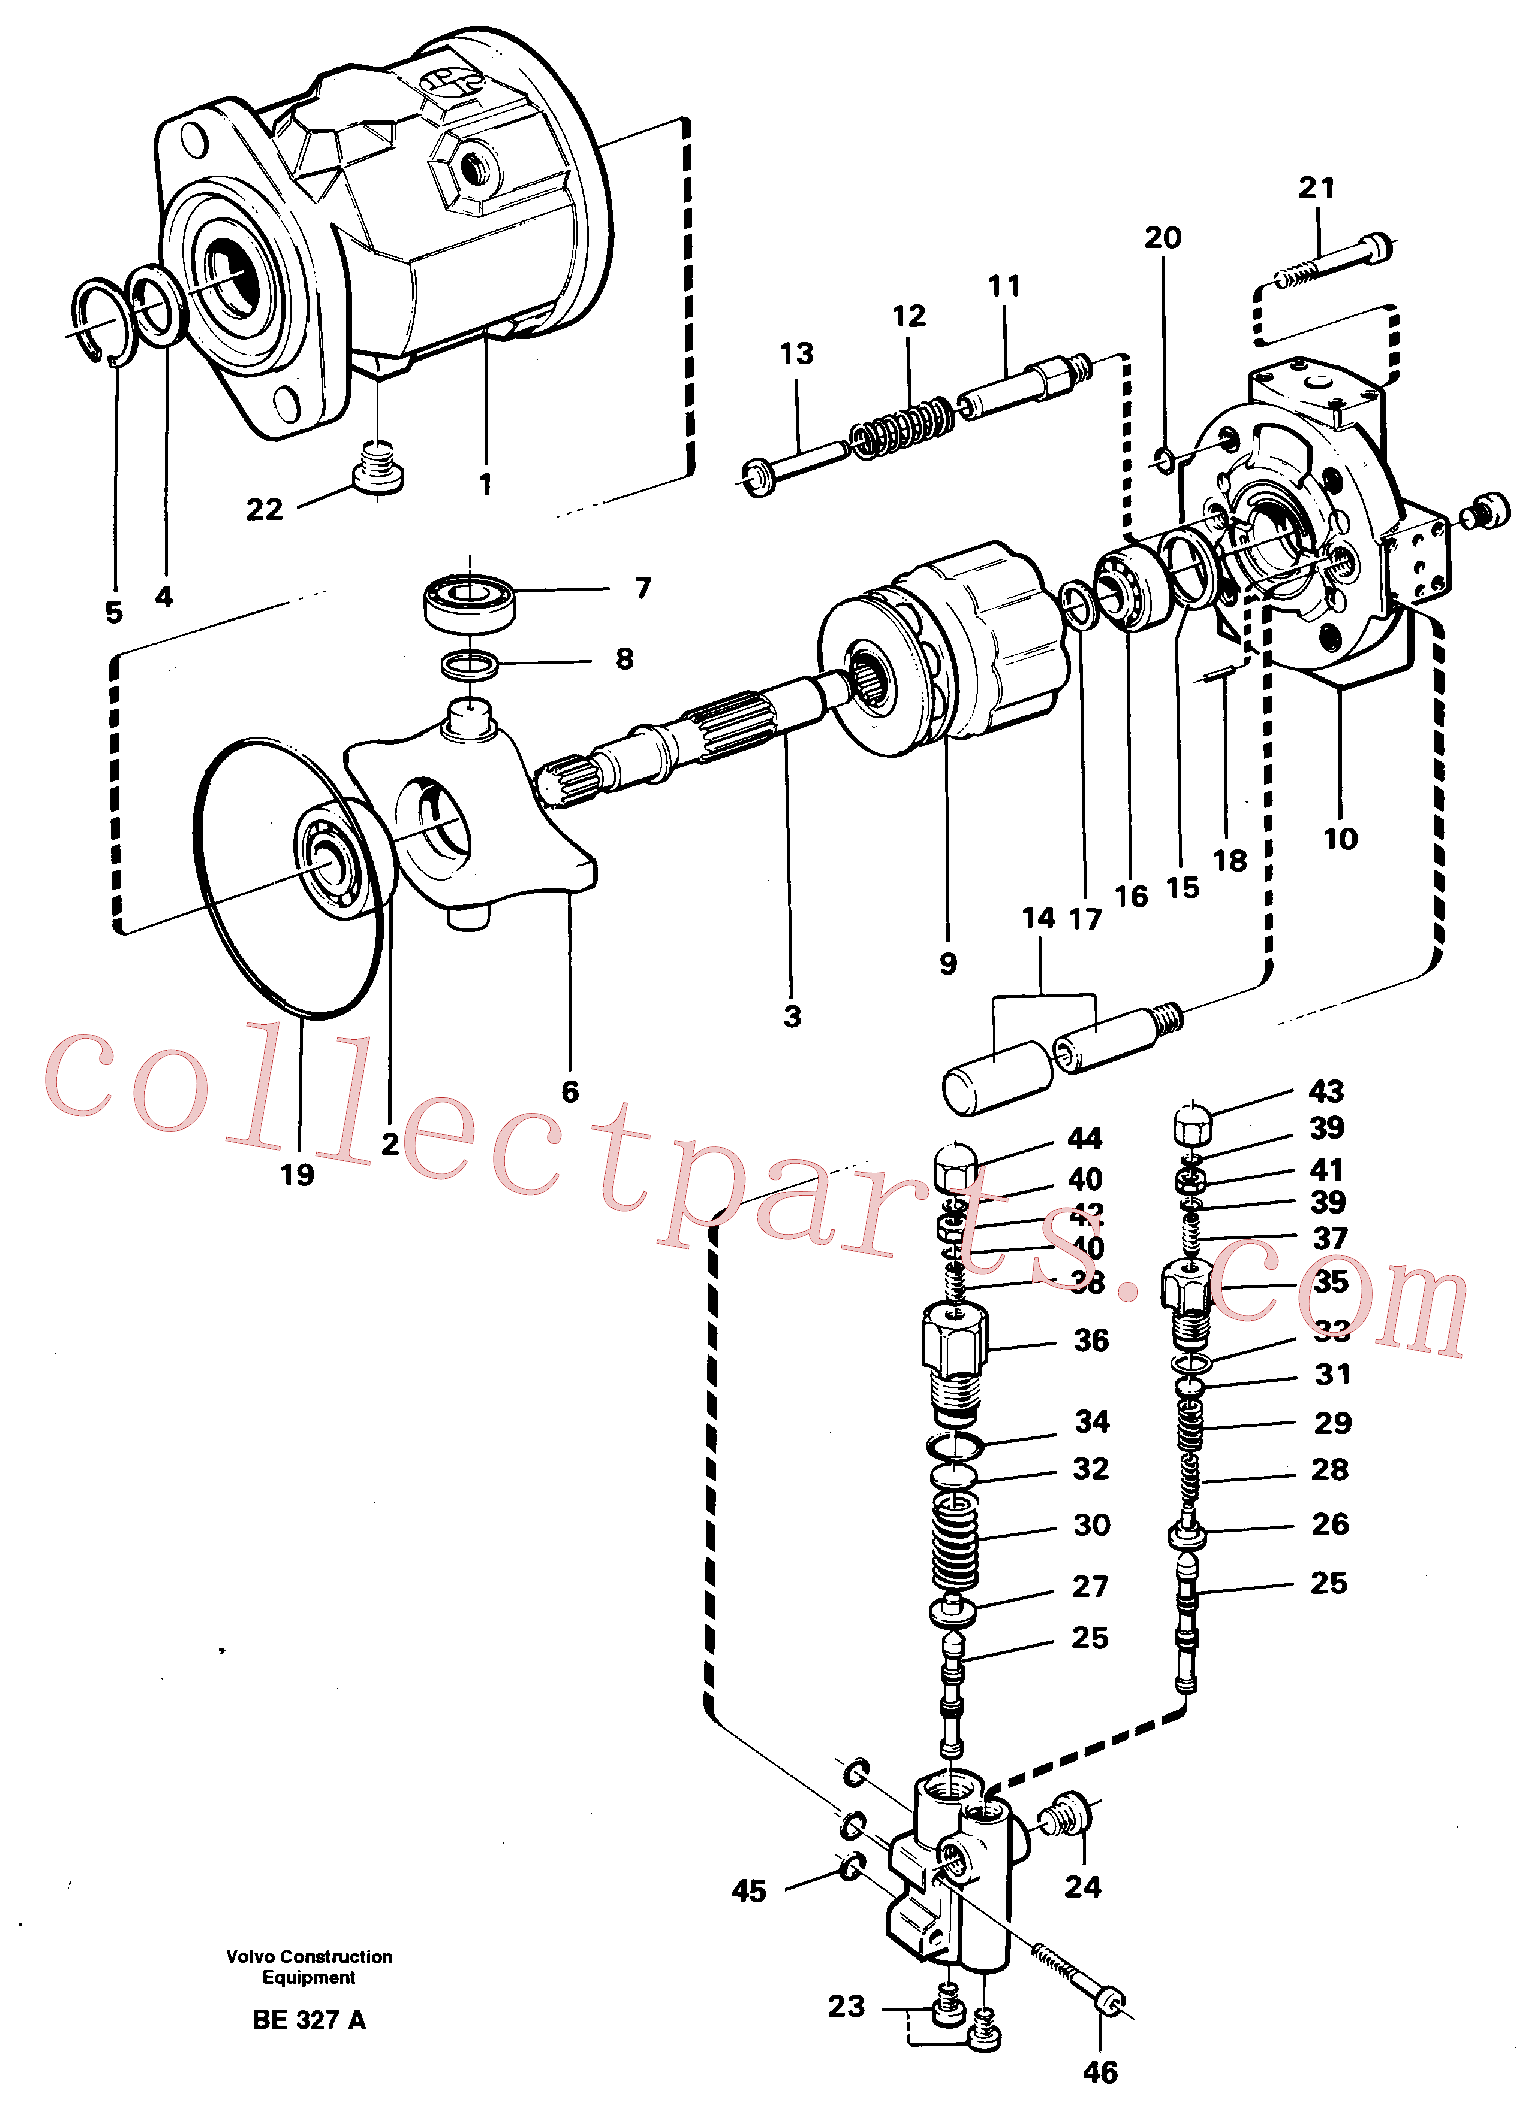 VOE11992751 for Volvo Hydraulic pump(BE327A assembly)